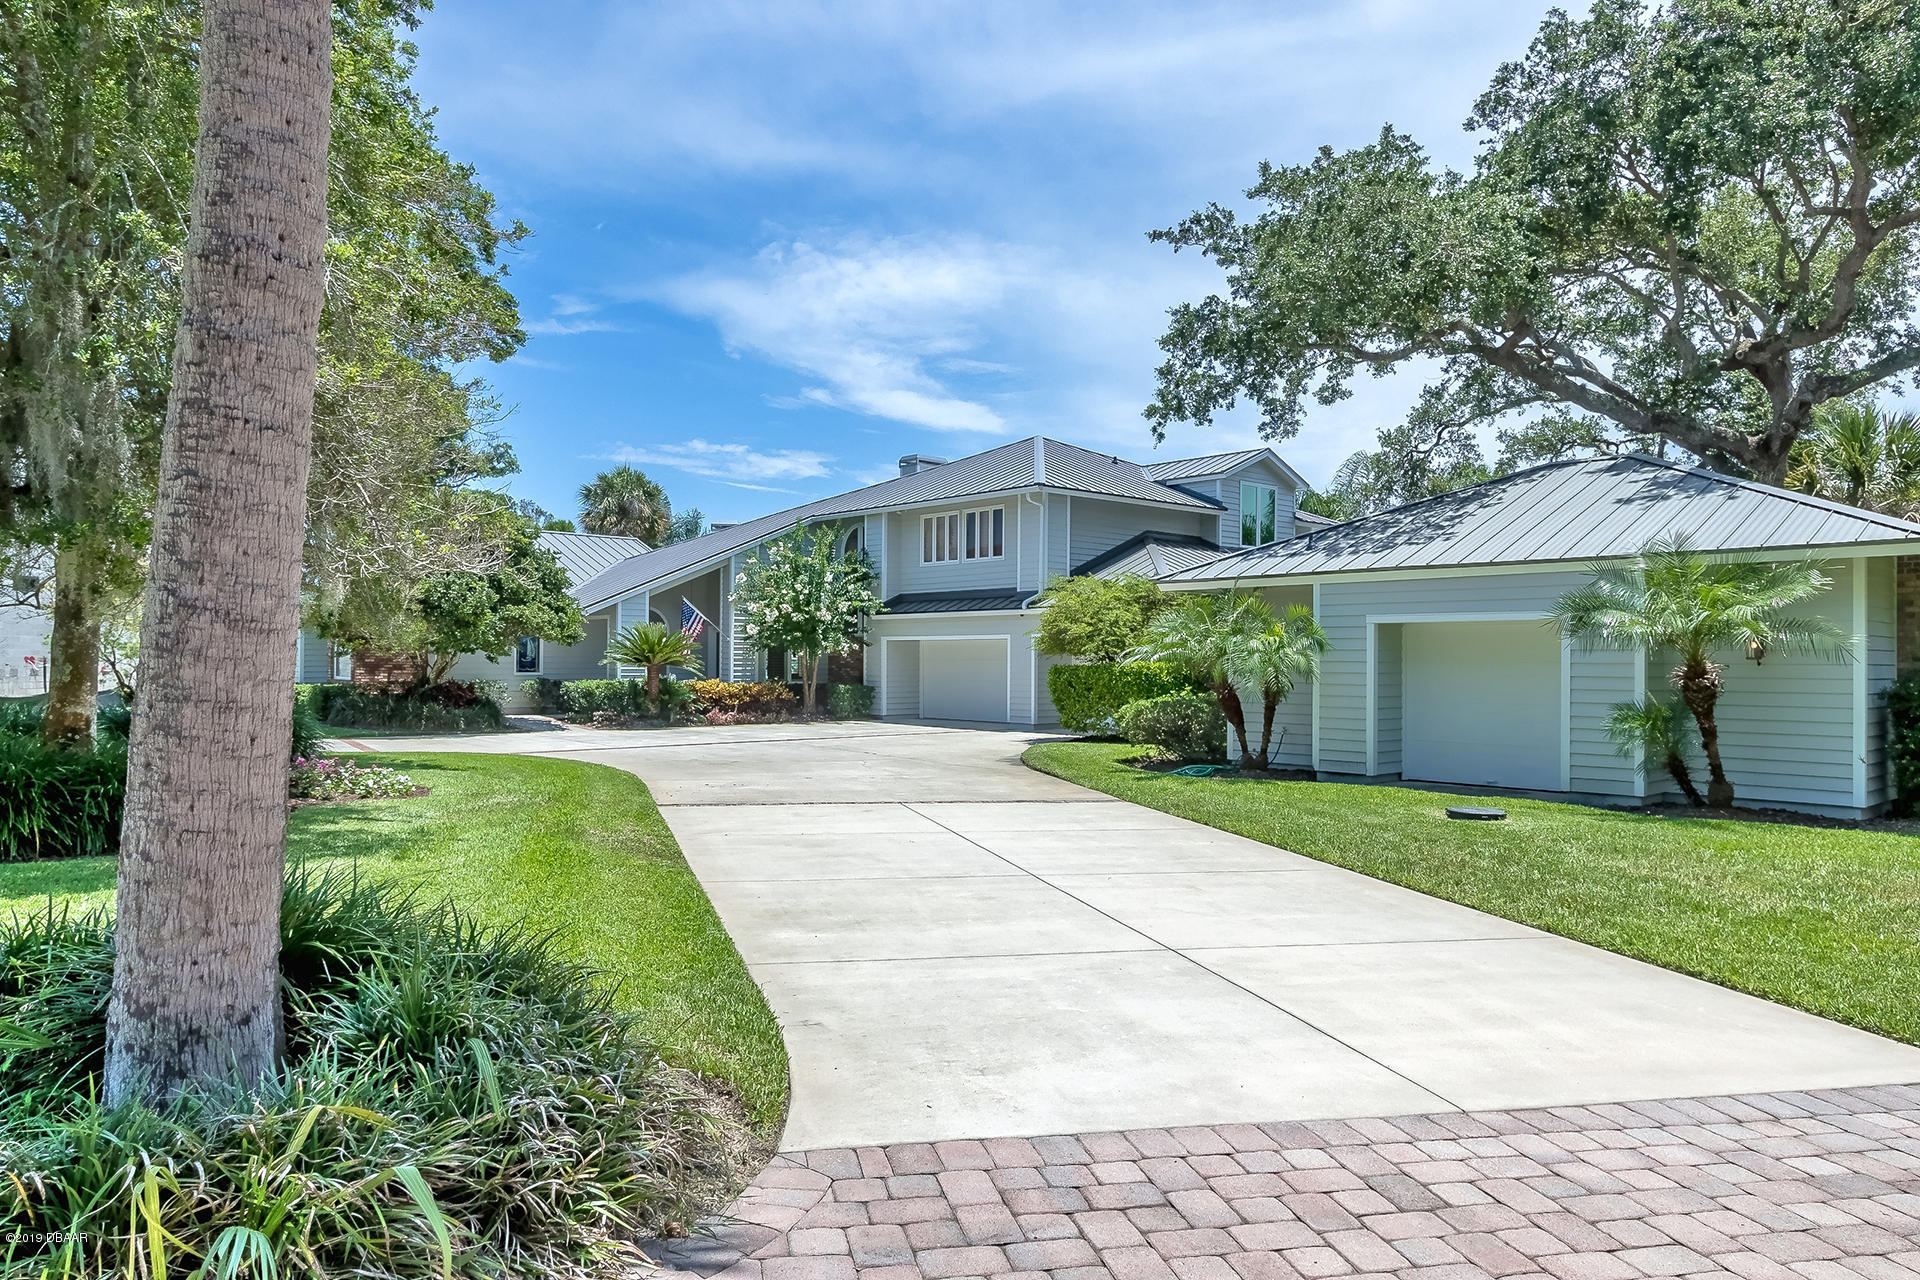 687 N Beach Street, Ormond Beach, Florida